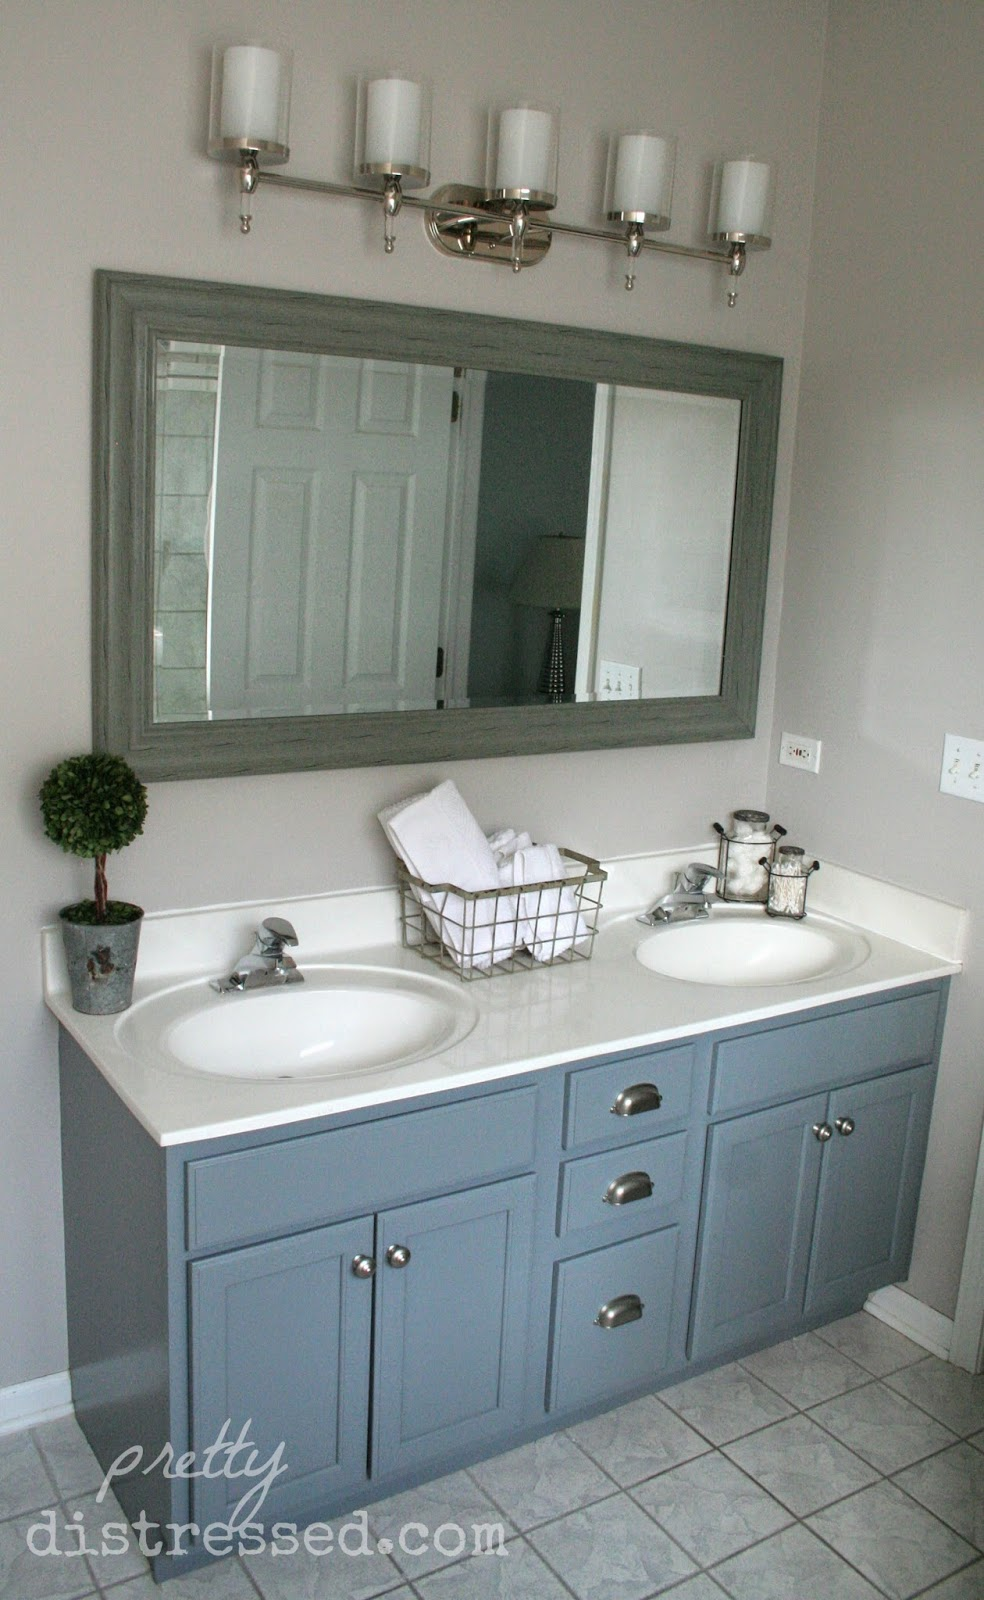 Bathroom Vanity Makeover With Latex Paint Pretty Distressed Christina Muscari